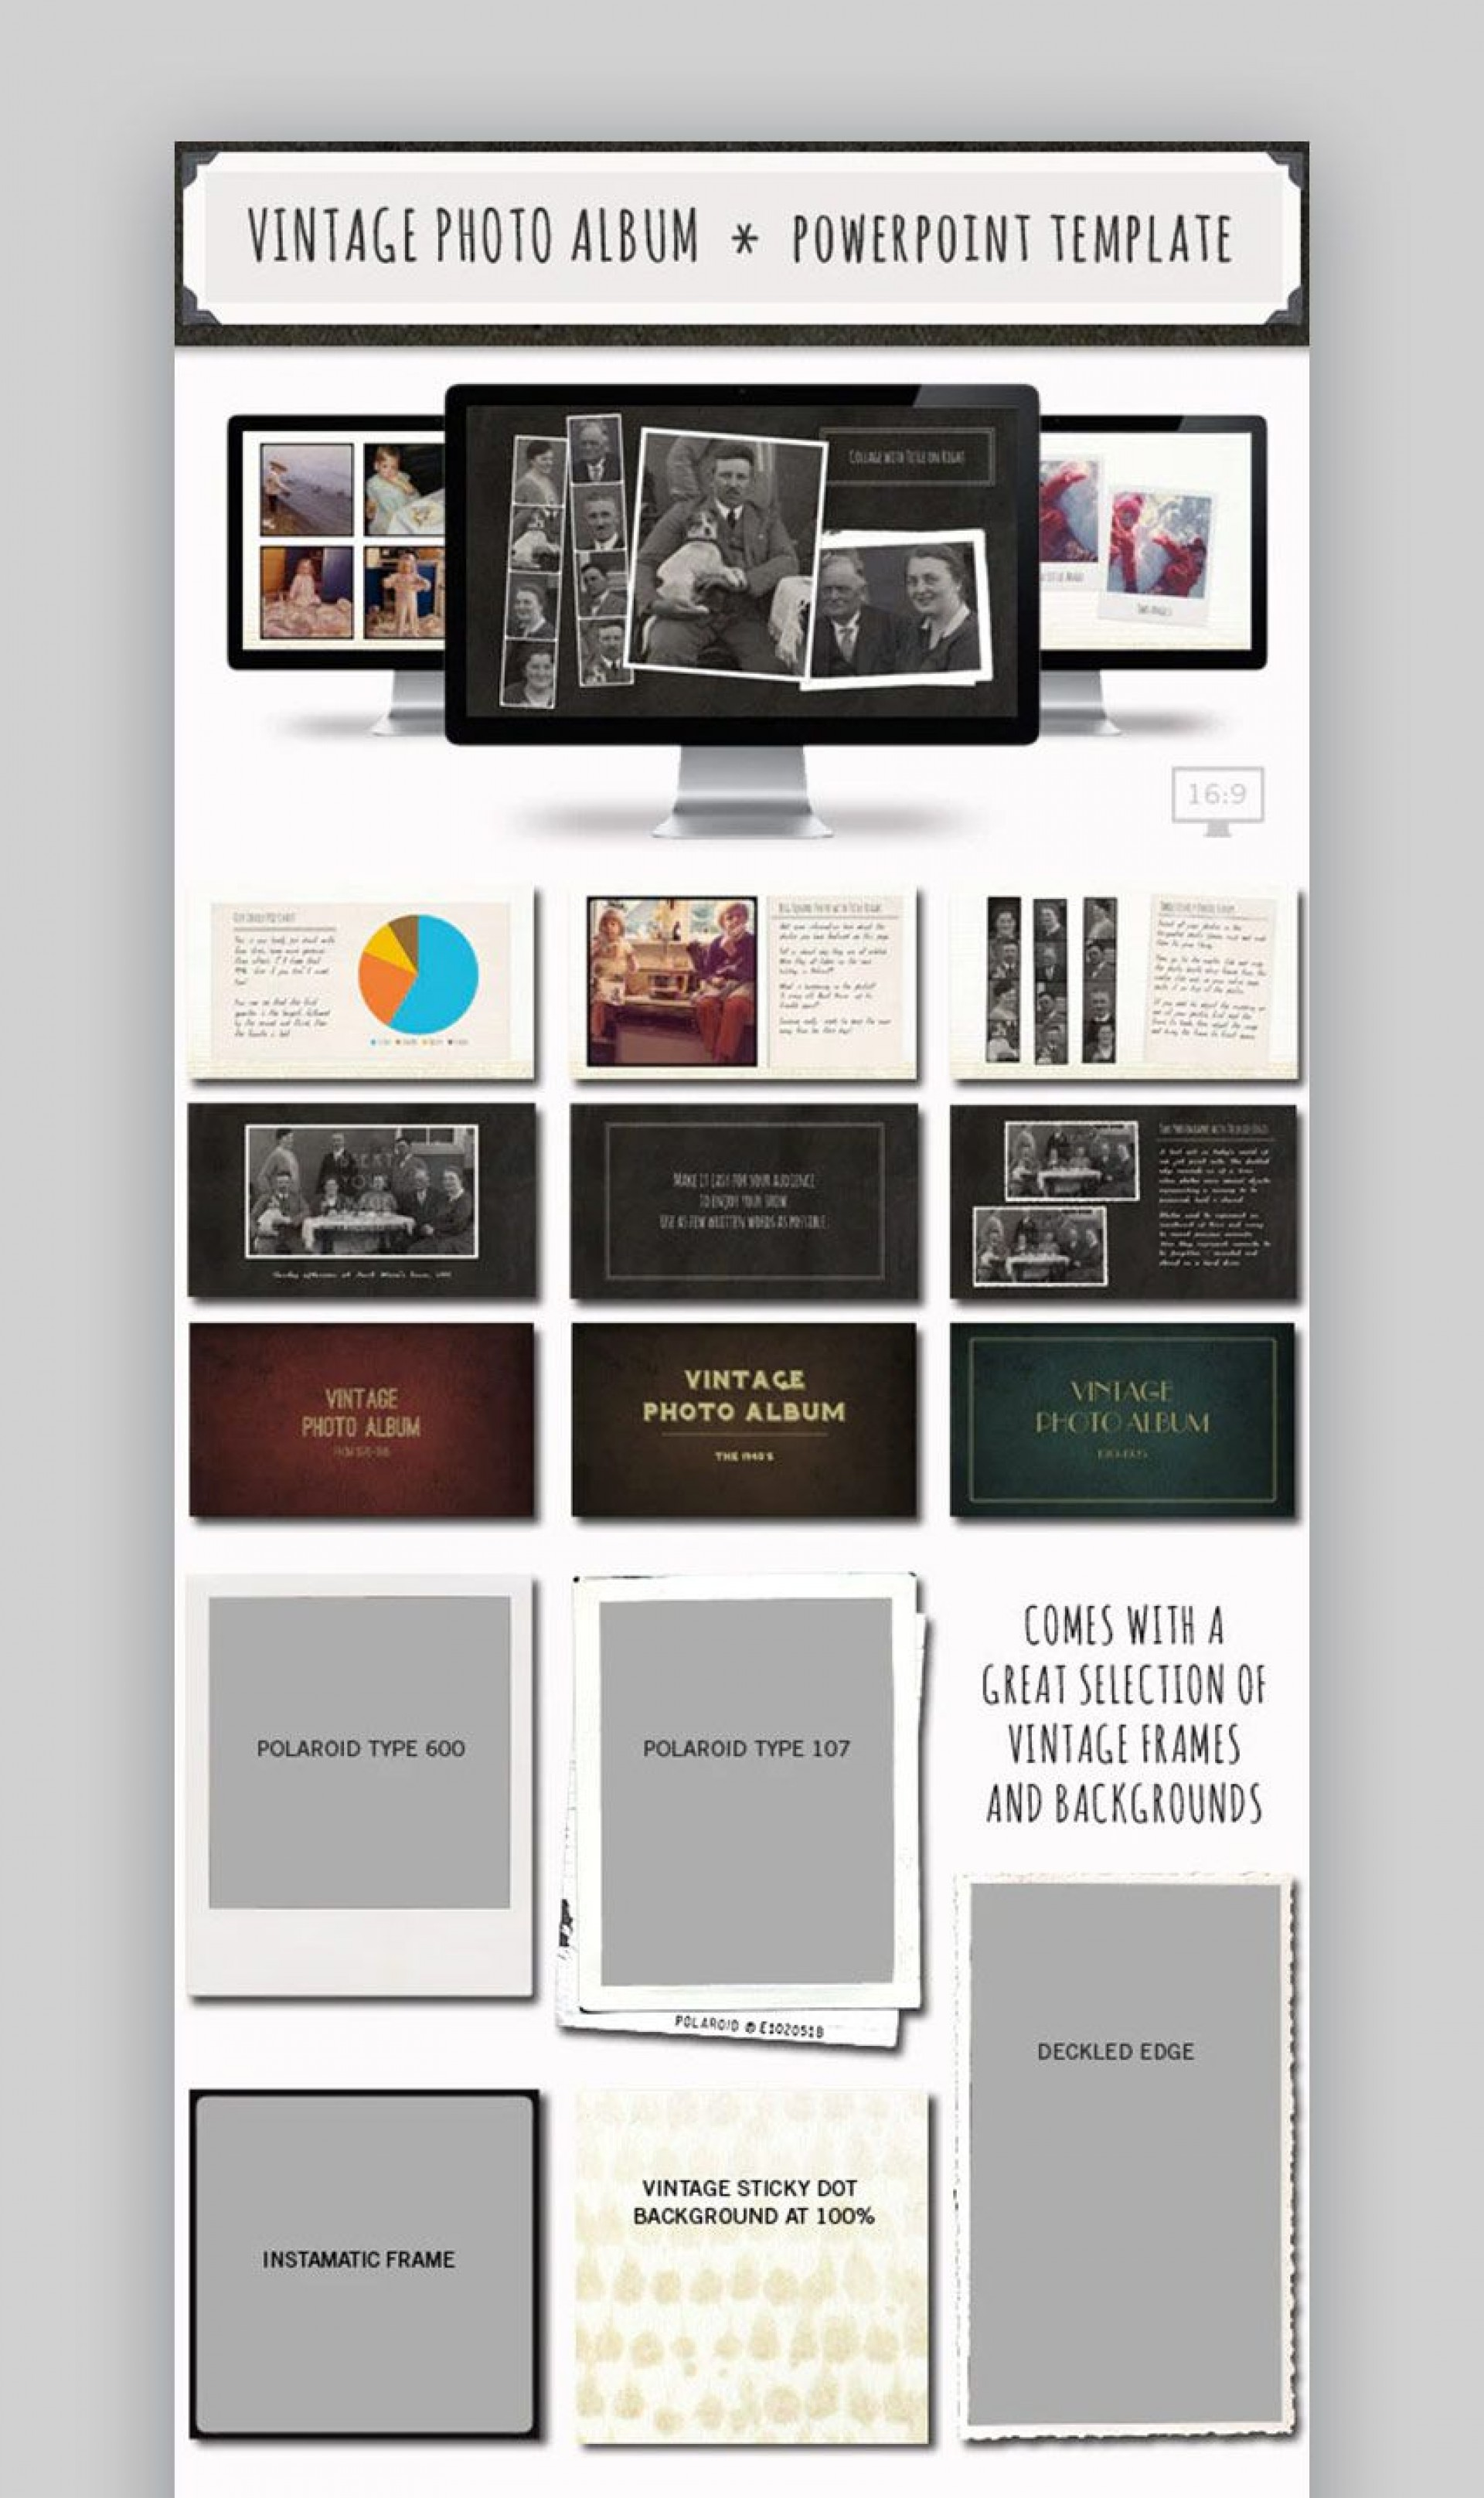 000 Astounding In Loving Memory Powerpoint Template Free Download Sample 1920